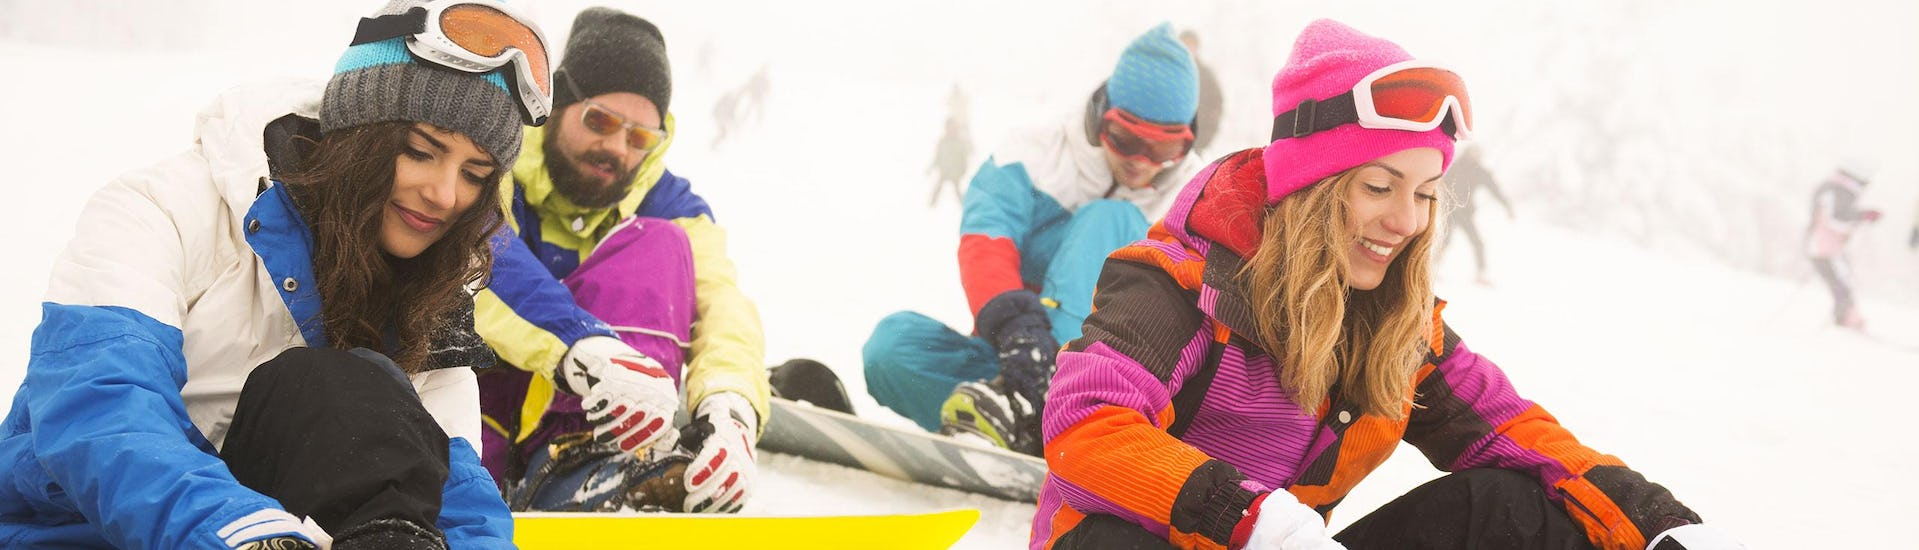 A group of snowboarders strapping on their snowboards during one of the Snowboard Instructor Private - All Levels & Ages organised by Escuela de Esquí Slalom.